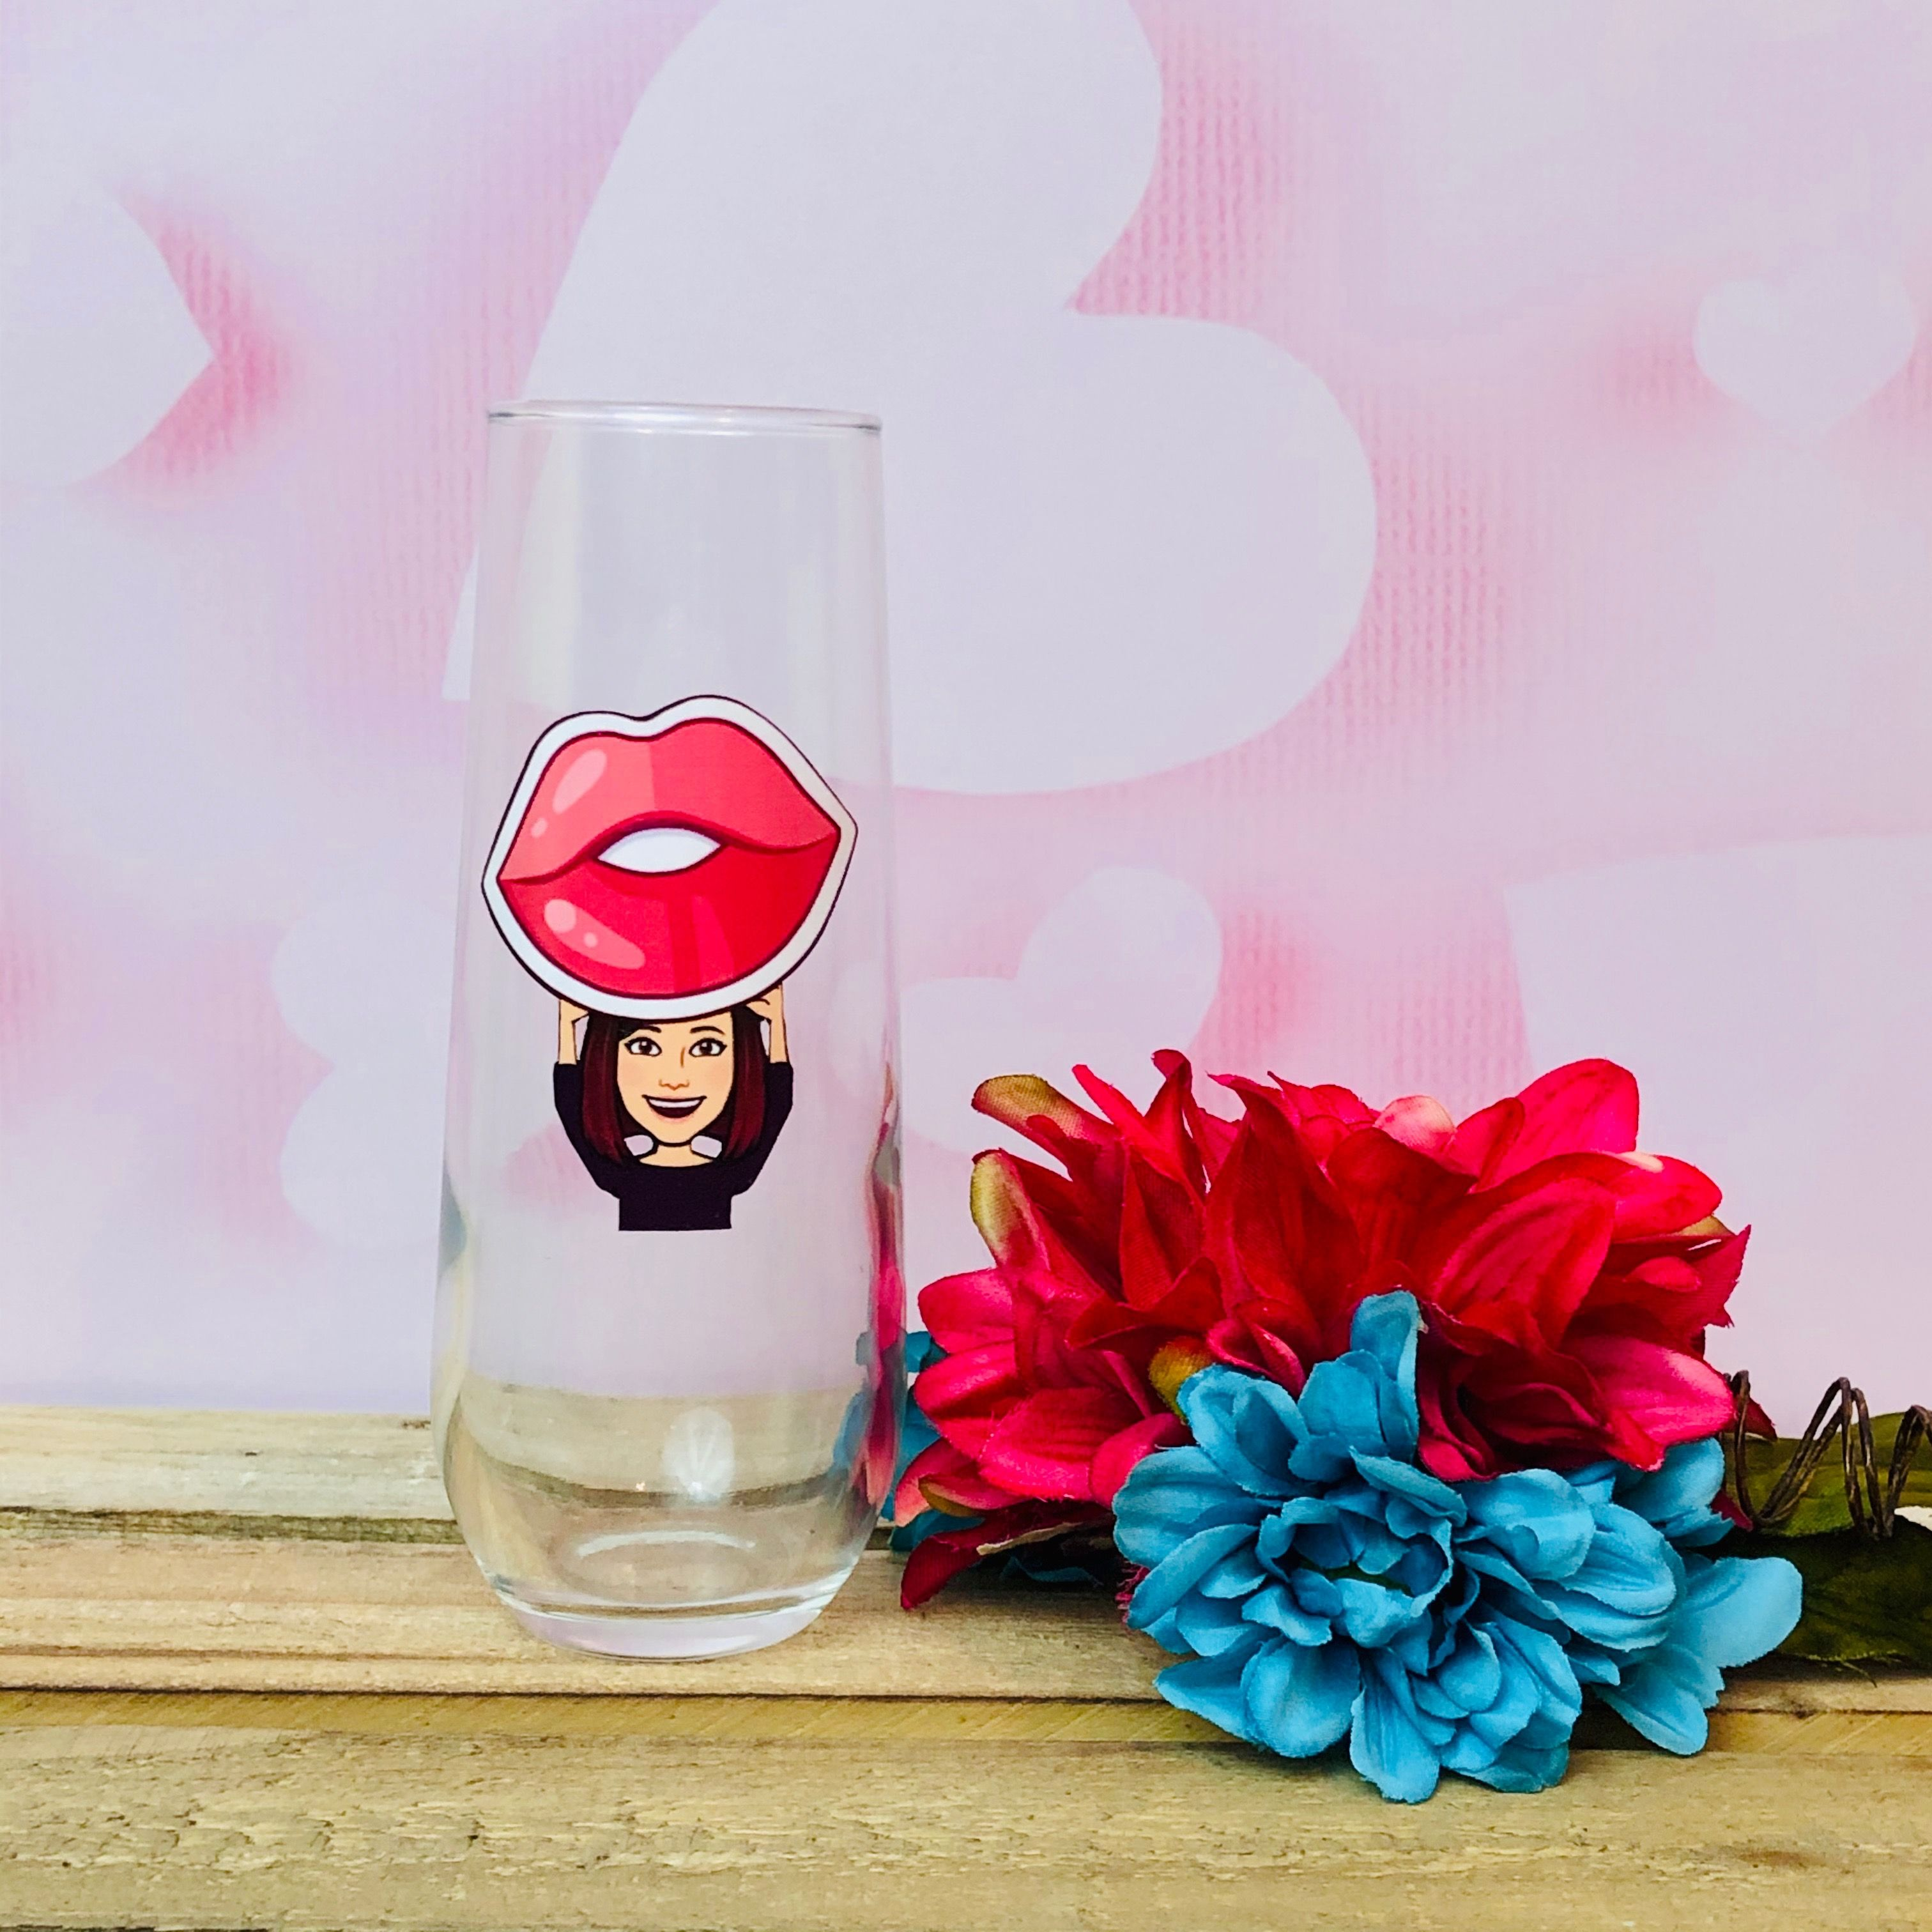 Stemless Champagne Glasses Really Are The Way To Go And This One Is Cute As A Button In 2020 Personalized Champagne Flutes Custom Champagne Flute Custom Wine Glass